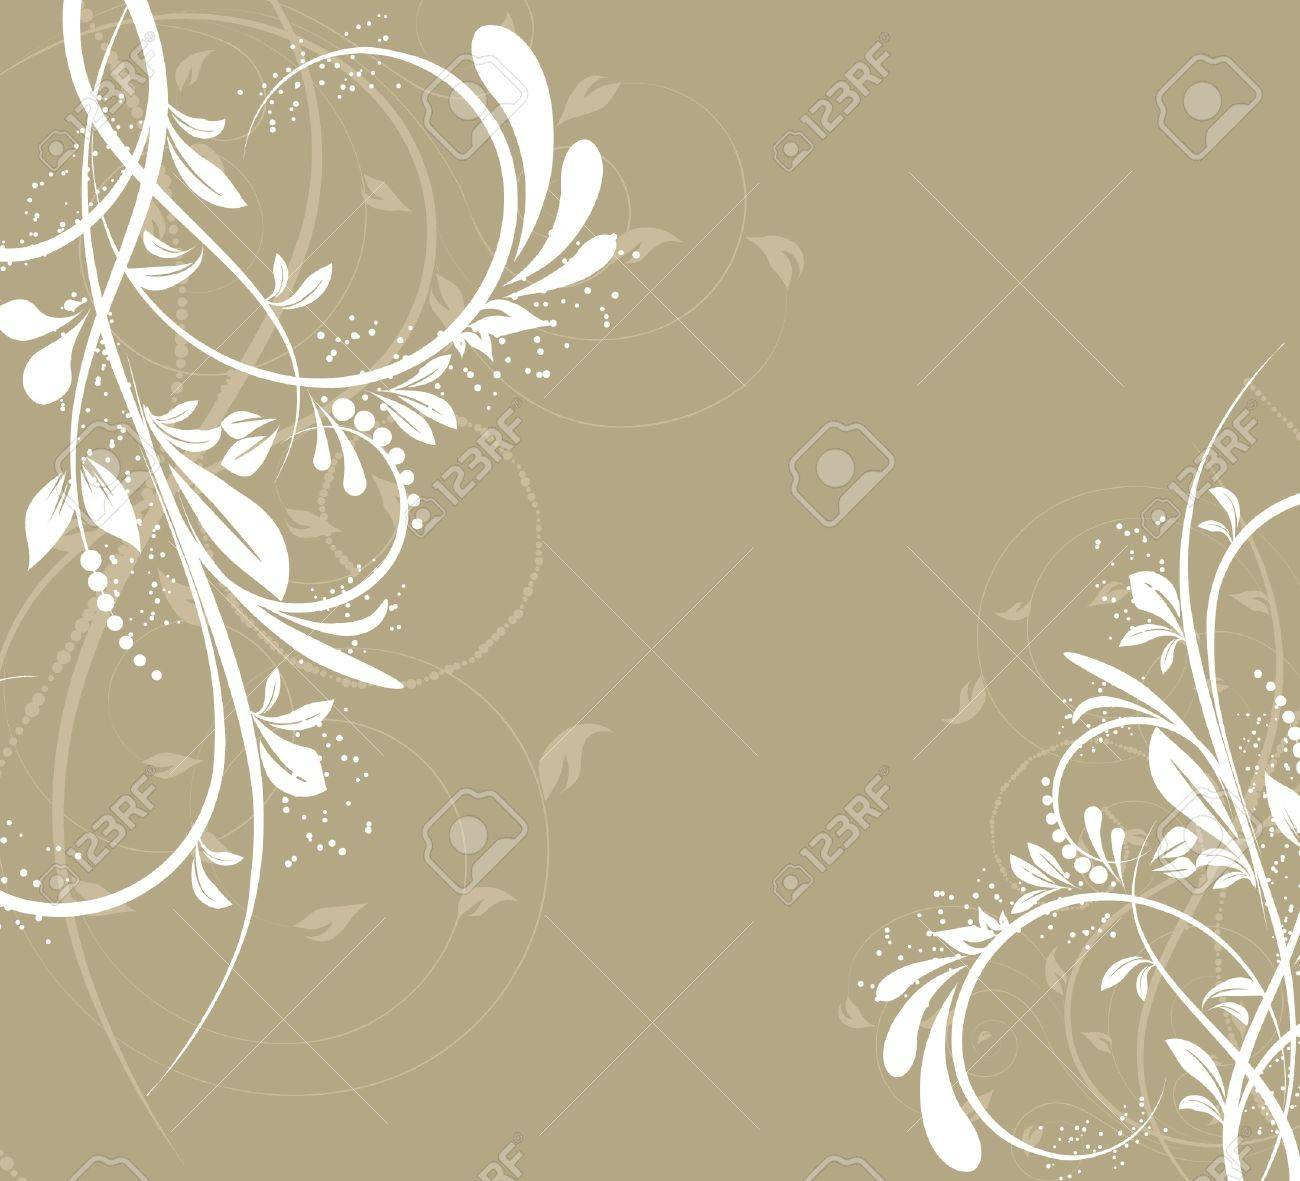 flower creative decorative abstract background Stock Vector - 9602124